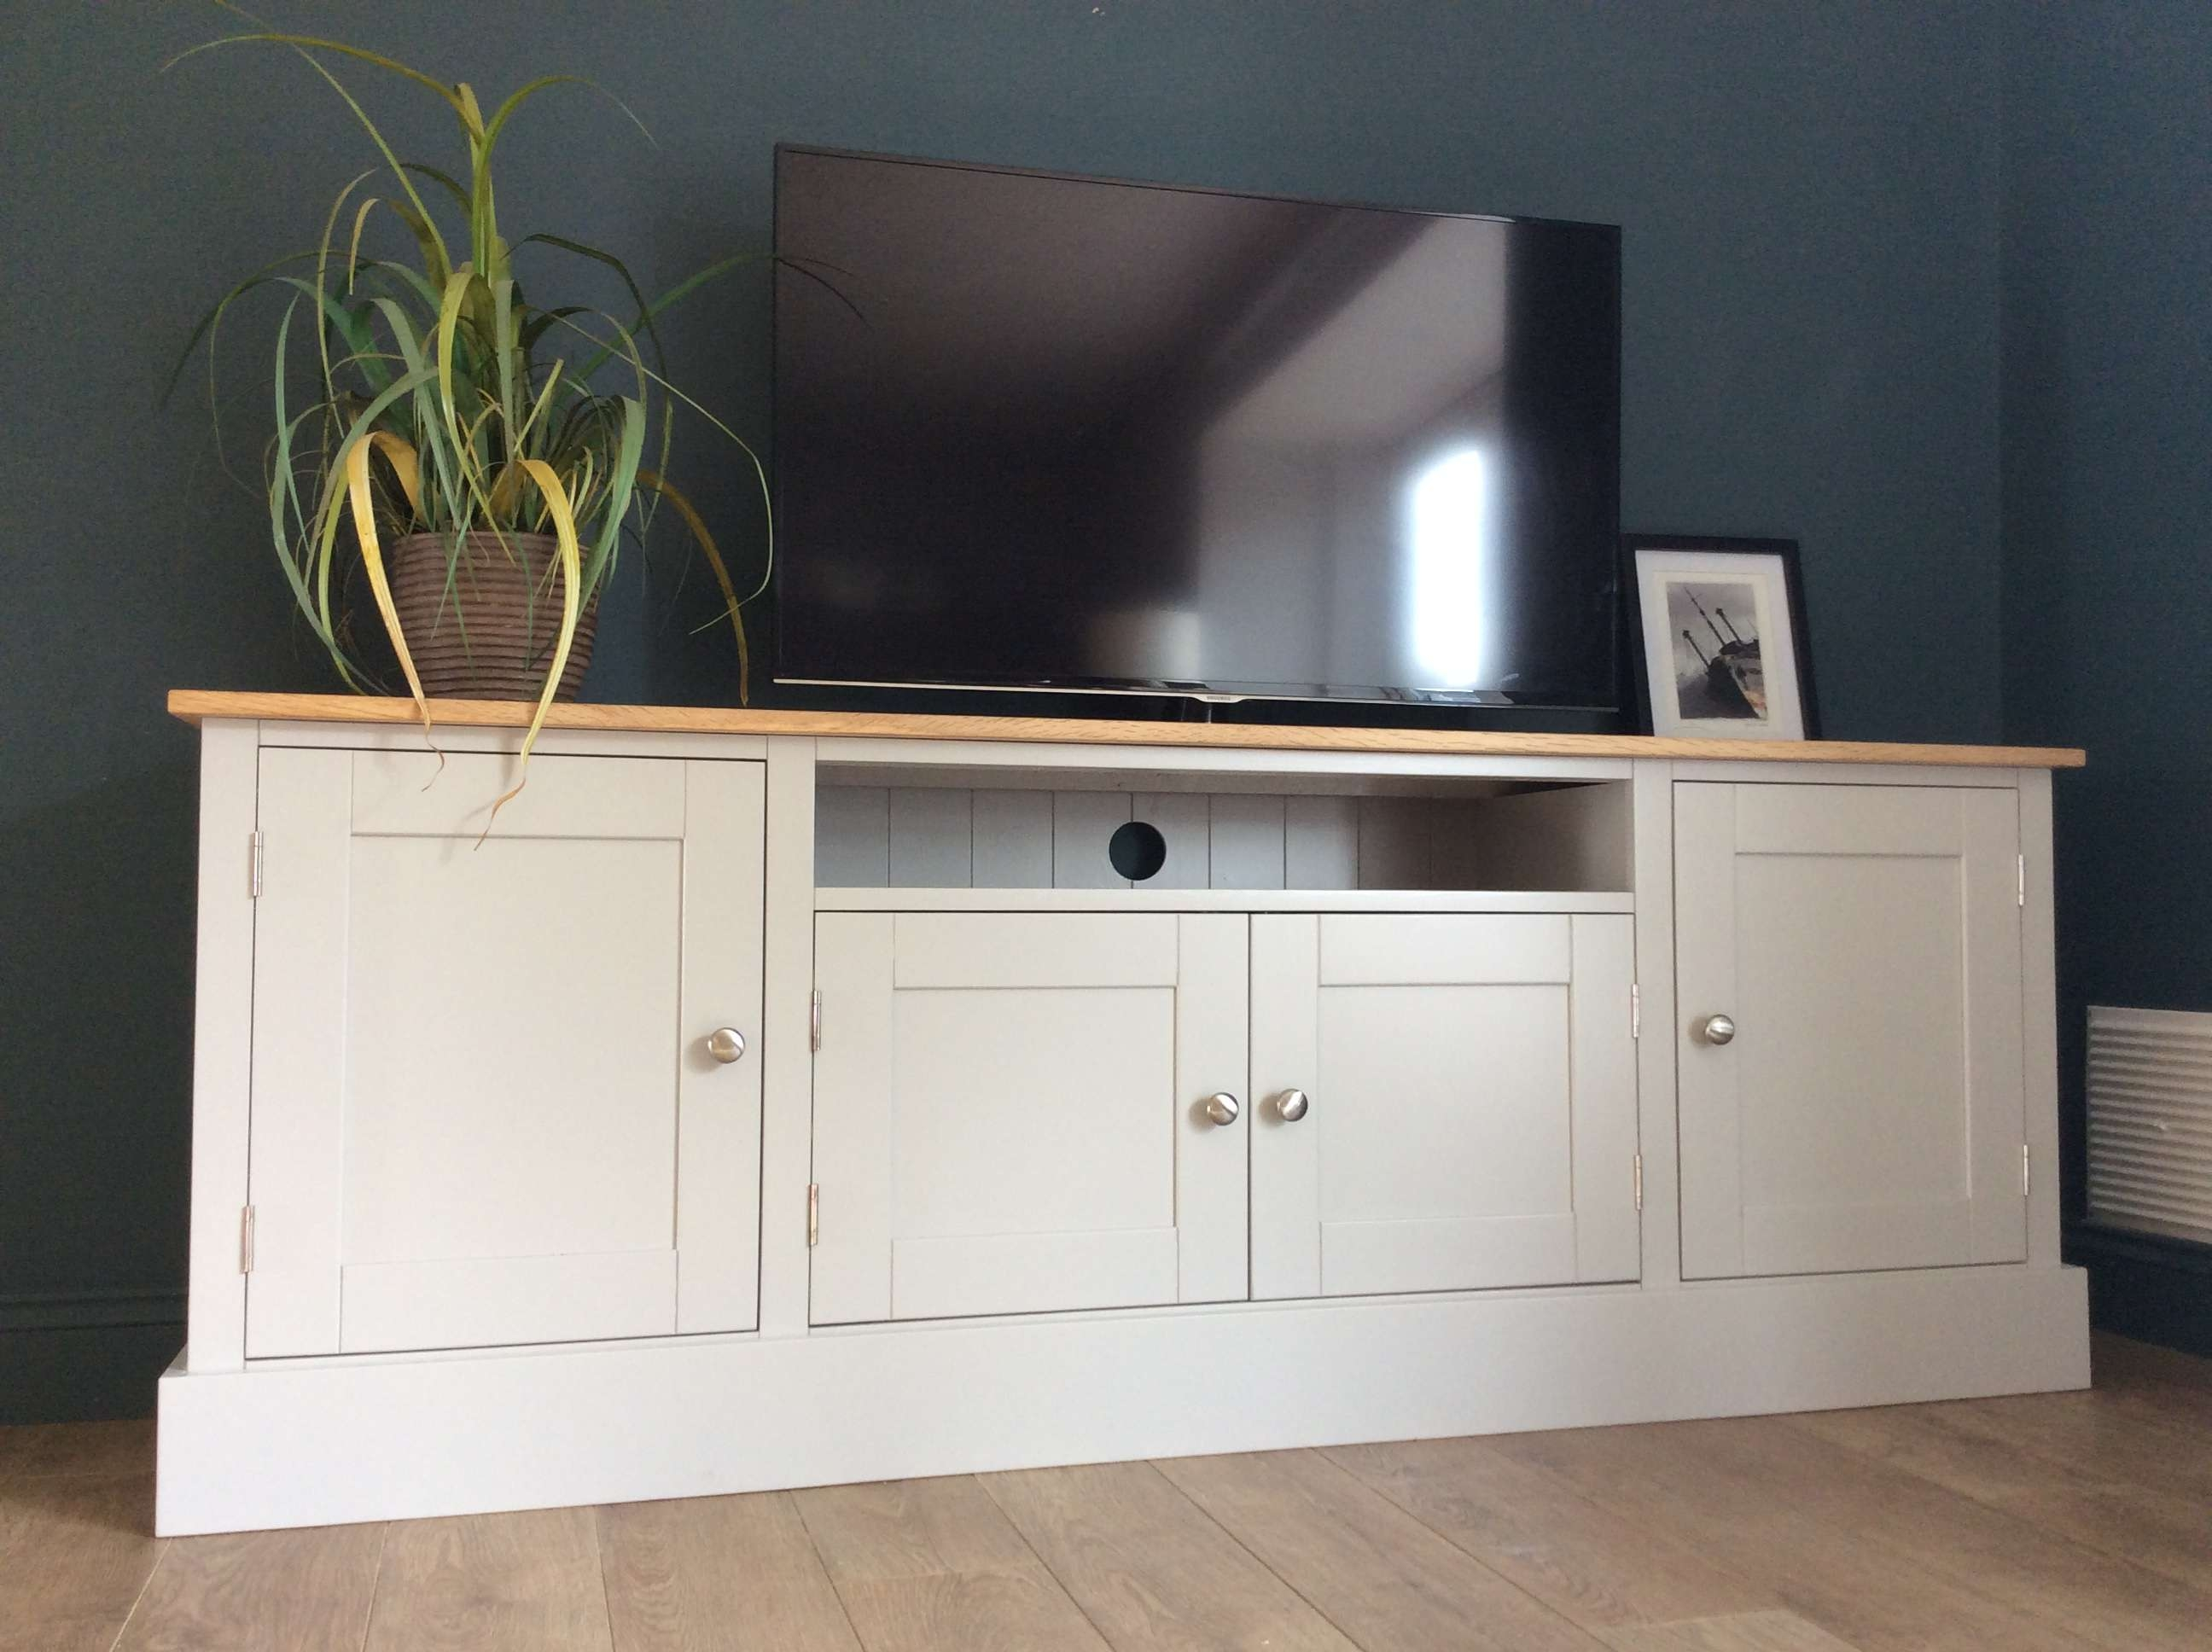 6ft Solid Pine & Oak Tv Cabinet – Nest At Number 20 Throughout Solid Oak Tv Cabinets (View 13 of 20)